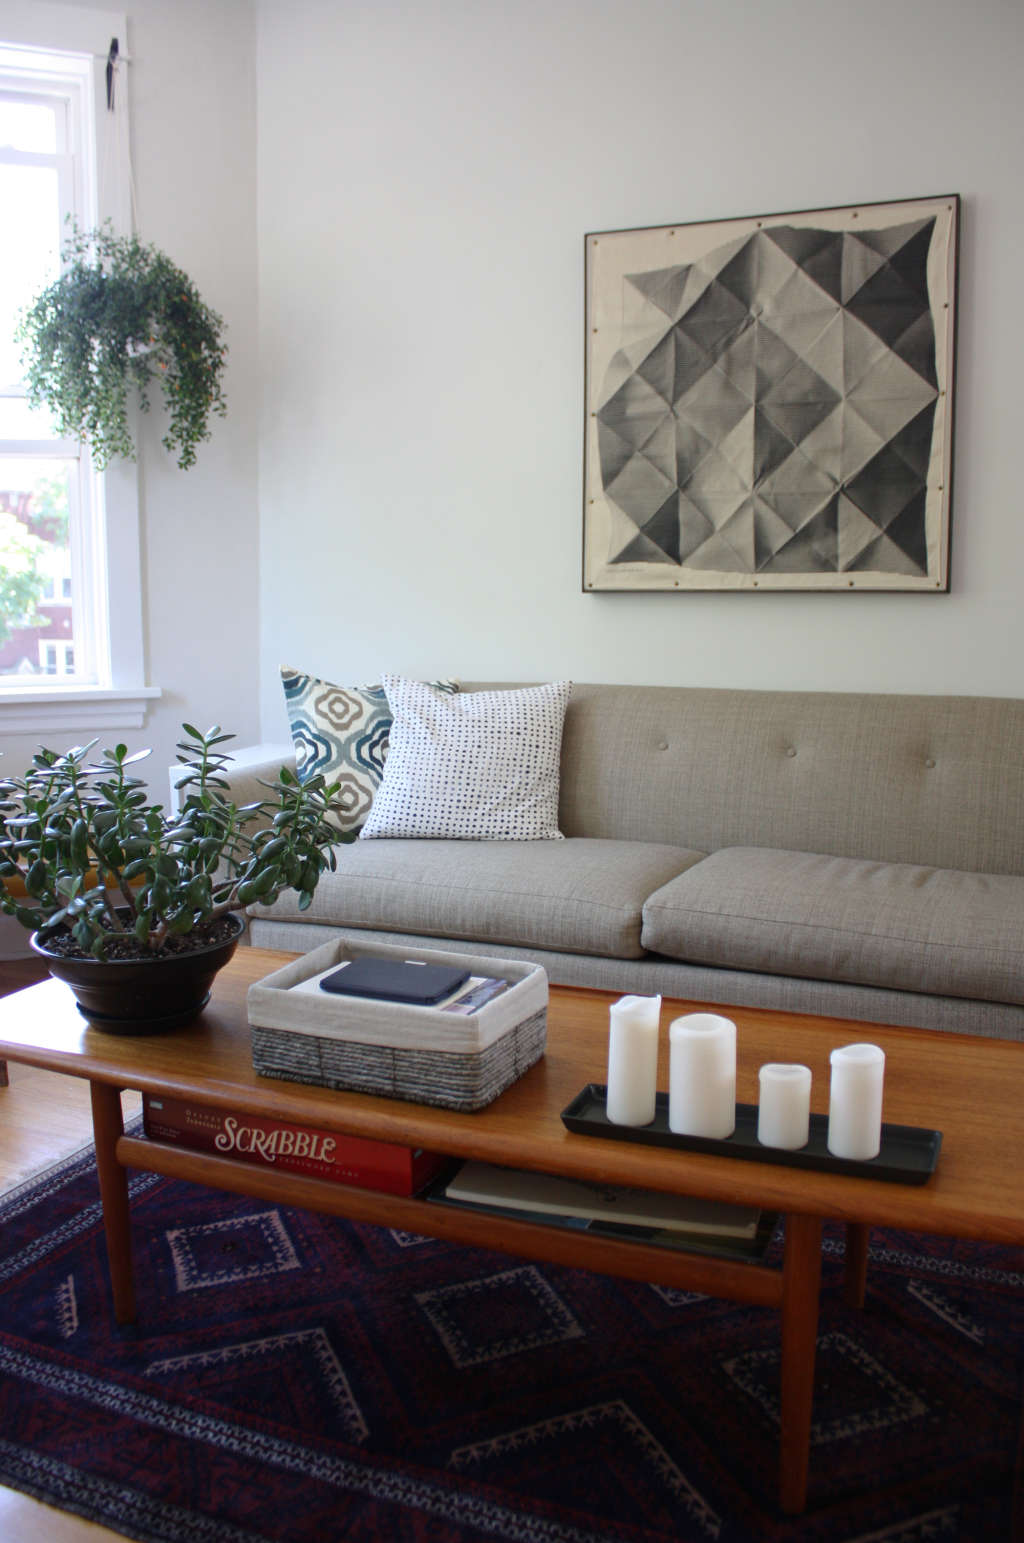 Cheap, Yet Chic: Low Cost Living Room Design Ideas ... on Awesome Apartment Budget Apartment Living Room Ideas  id=35105